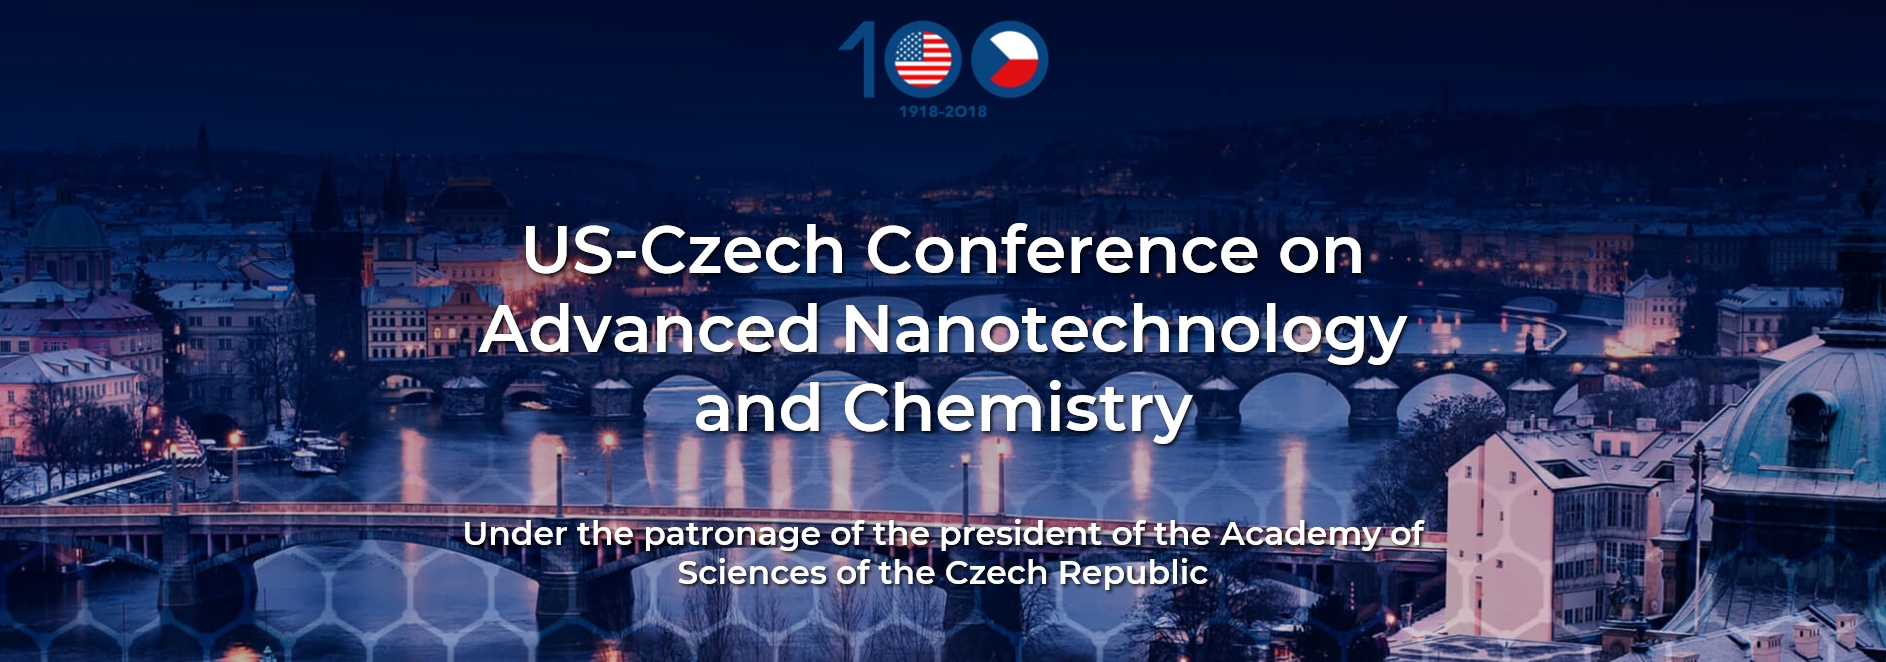 US-Czeh conference on advanced nanotechnologies